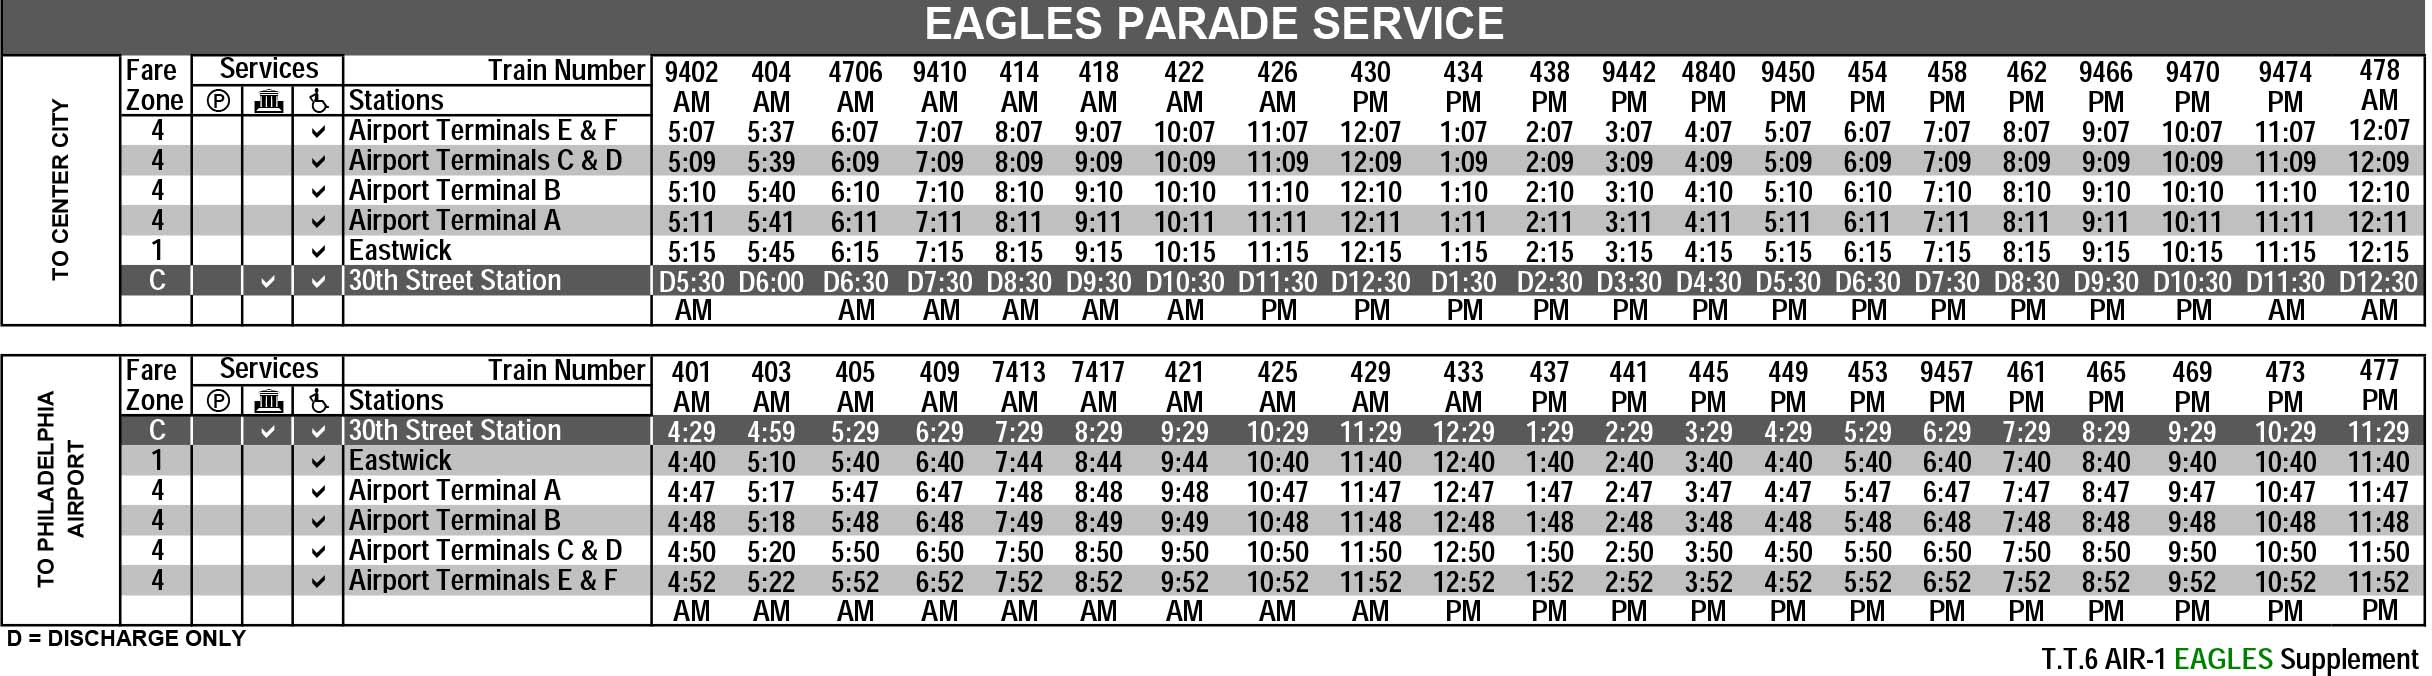 Eagles Parade Airport Line Timetable